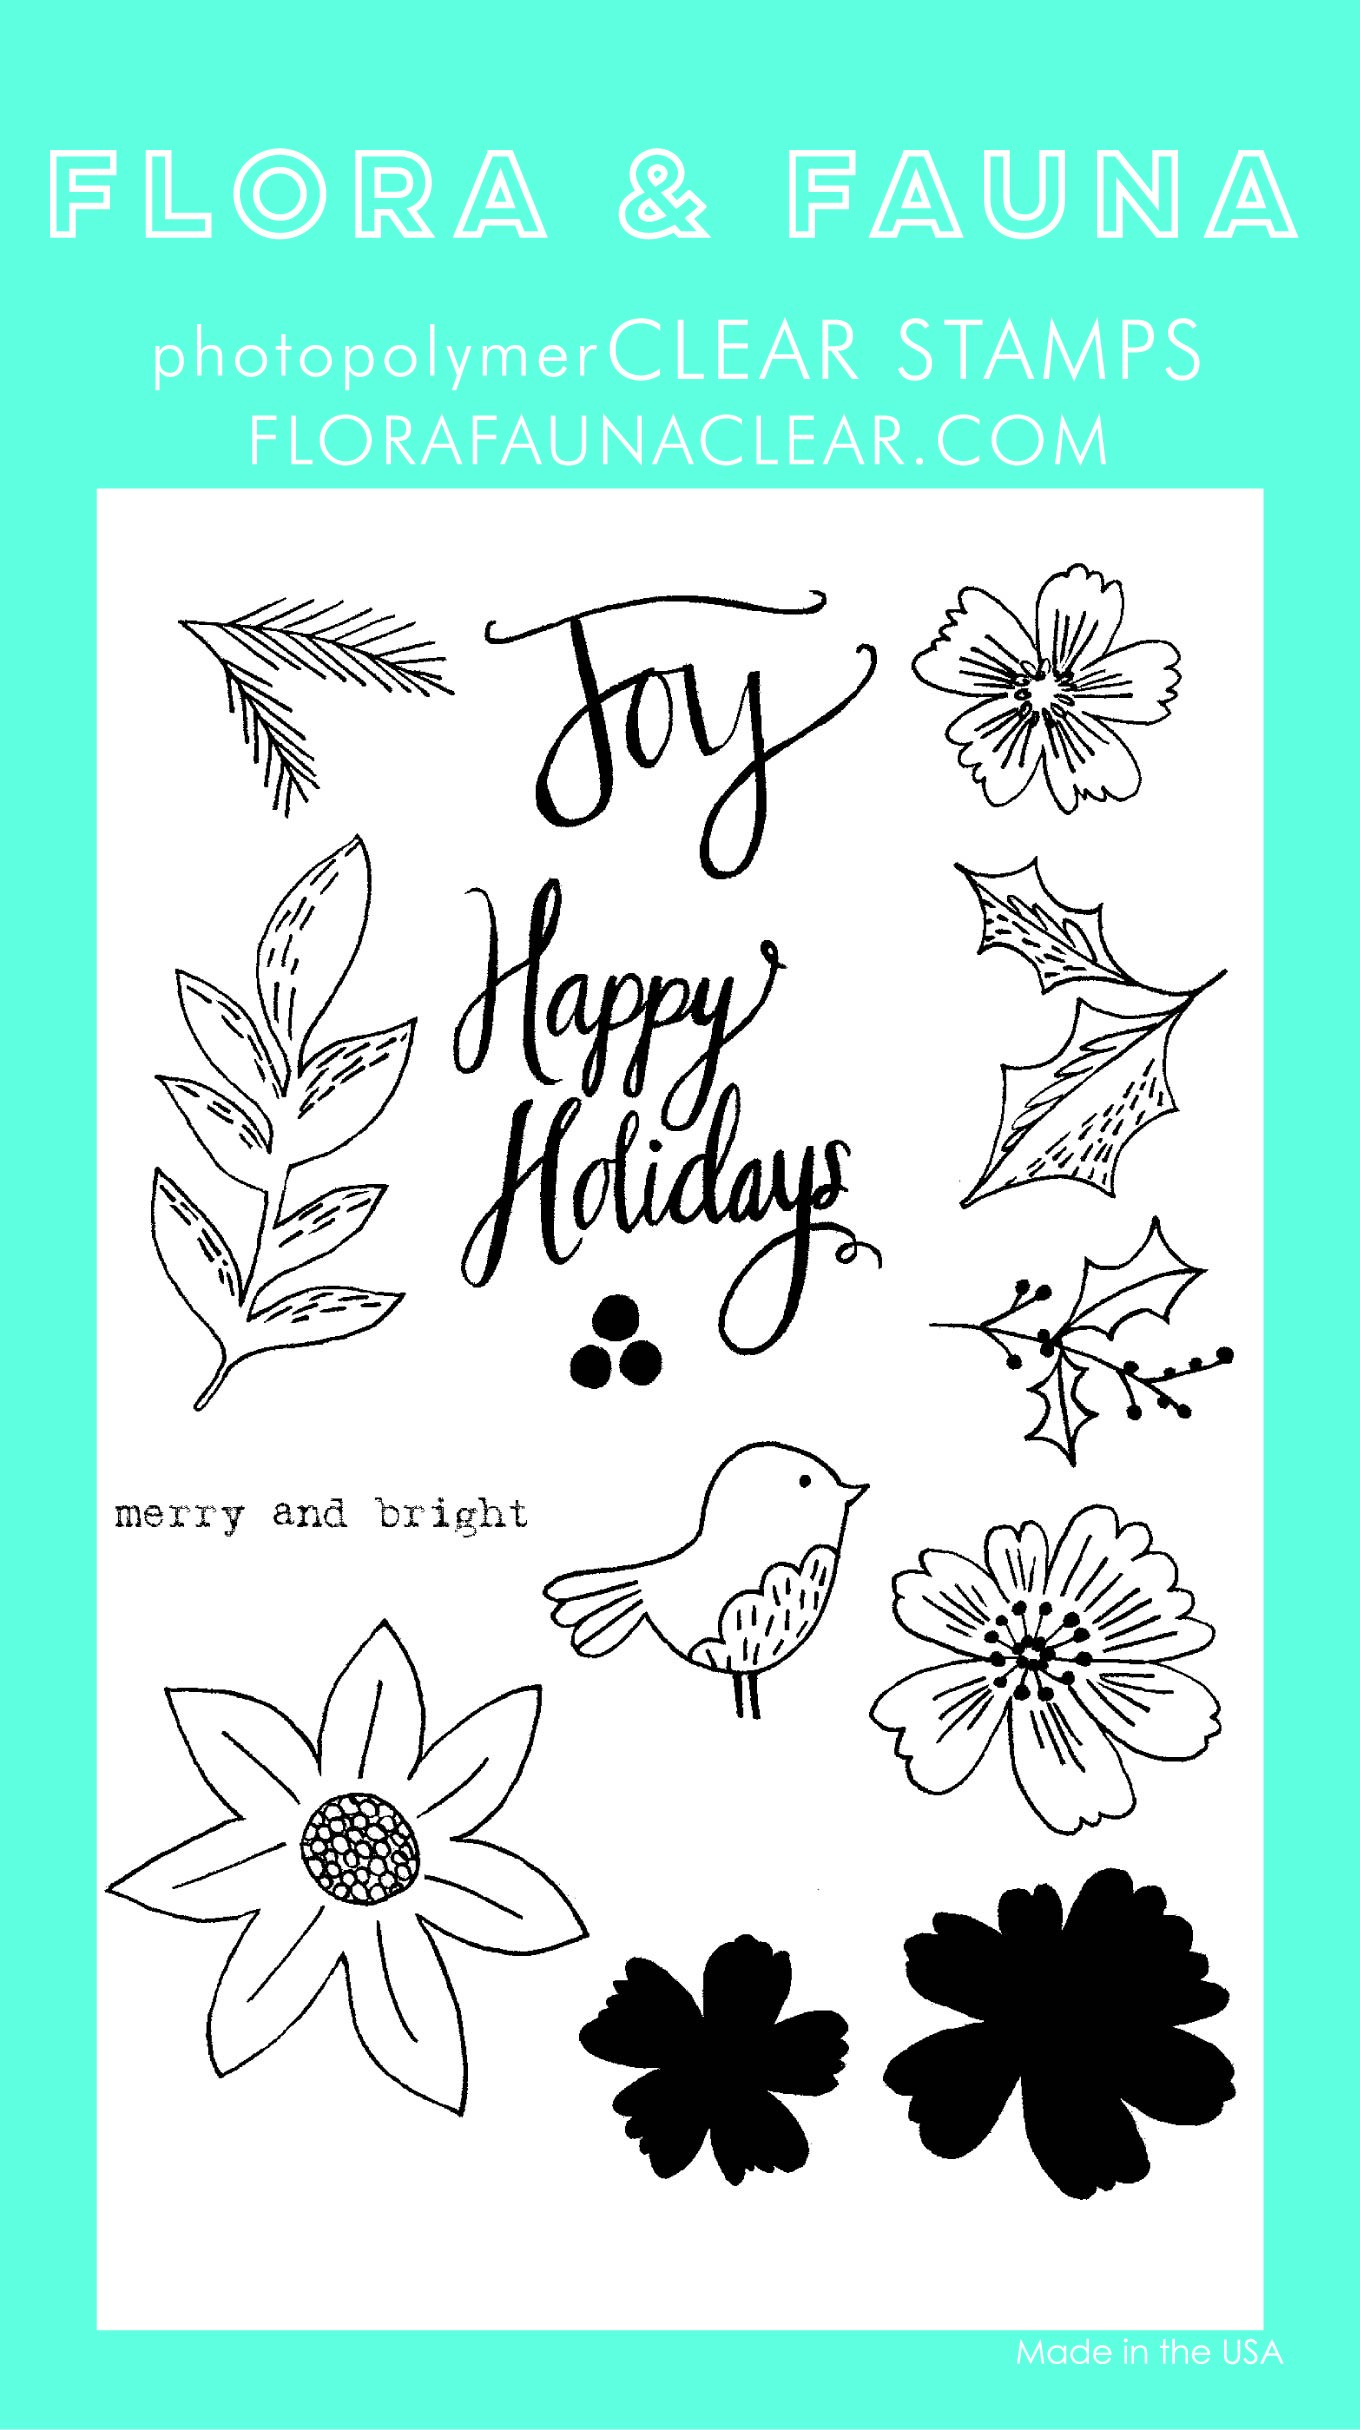 Flora & Fauna Floral Happy Holidays Clear Stamp Set